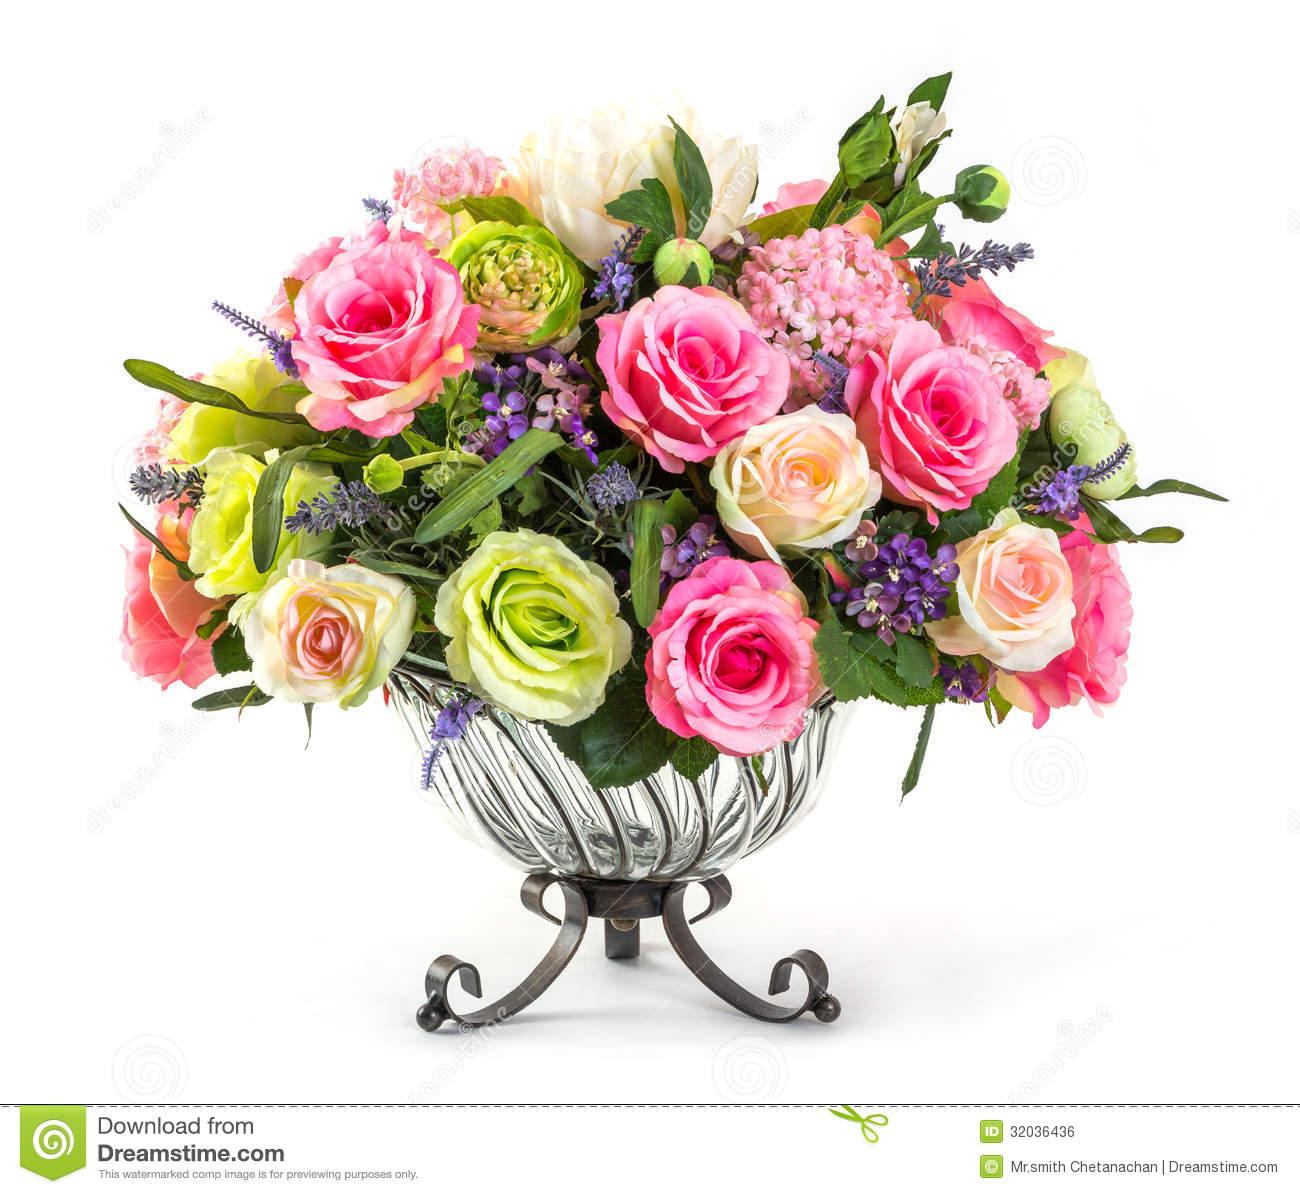 Free picture of bouquet of flowers royalty free stock Free picture of bouquet of flowers - ClipartFest royalty free stock